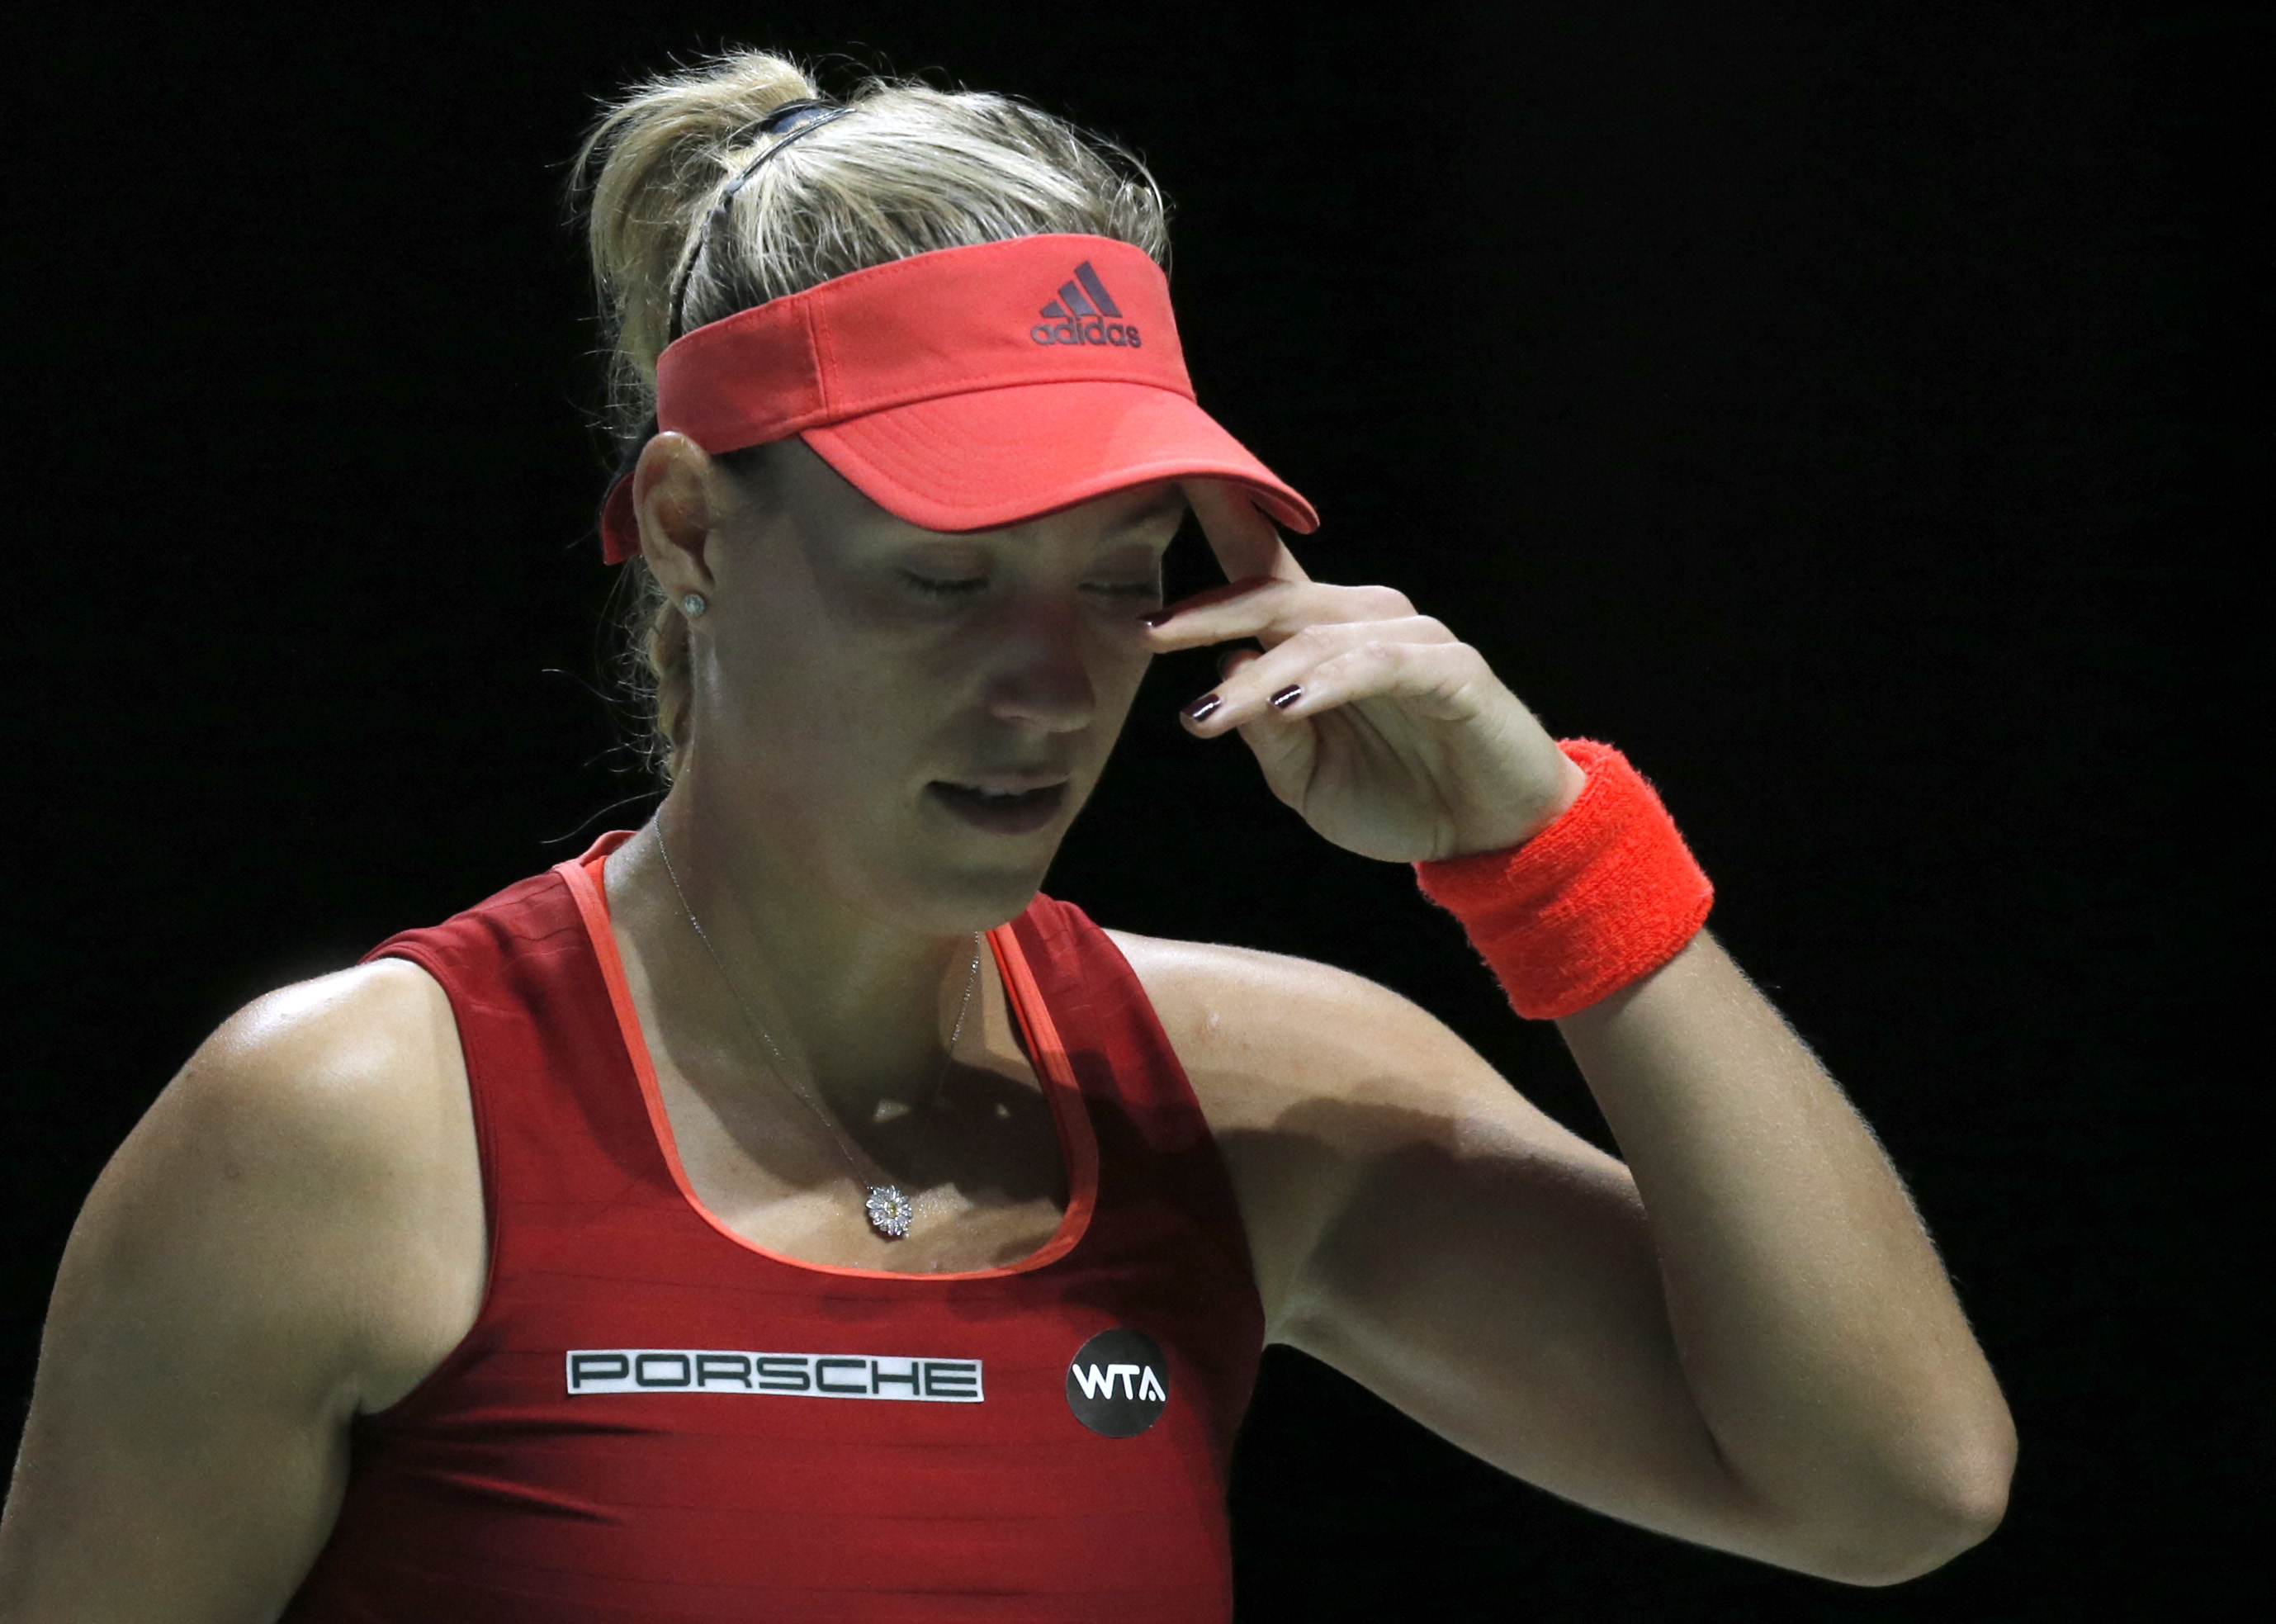 Tennis - BNP Paribas WTA Finals - Singapore Indoor Stadium, Singapore Sports Hub - 30/10/15nGermany's Angelique Kerber looks dejected during the round robin matchnAction Images via Reuters / Jeremy LeenLivepic